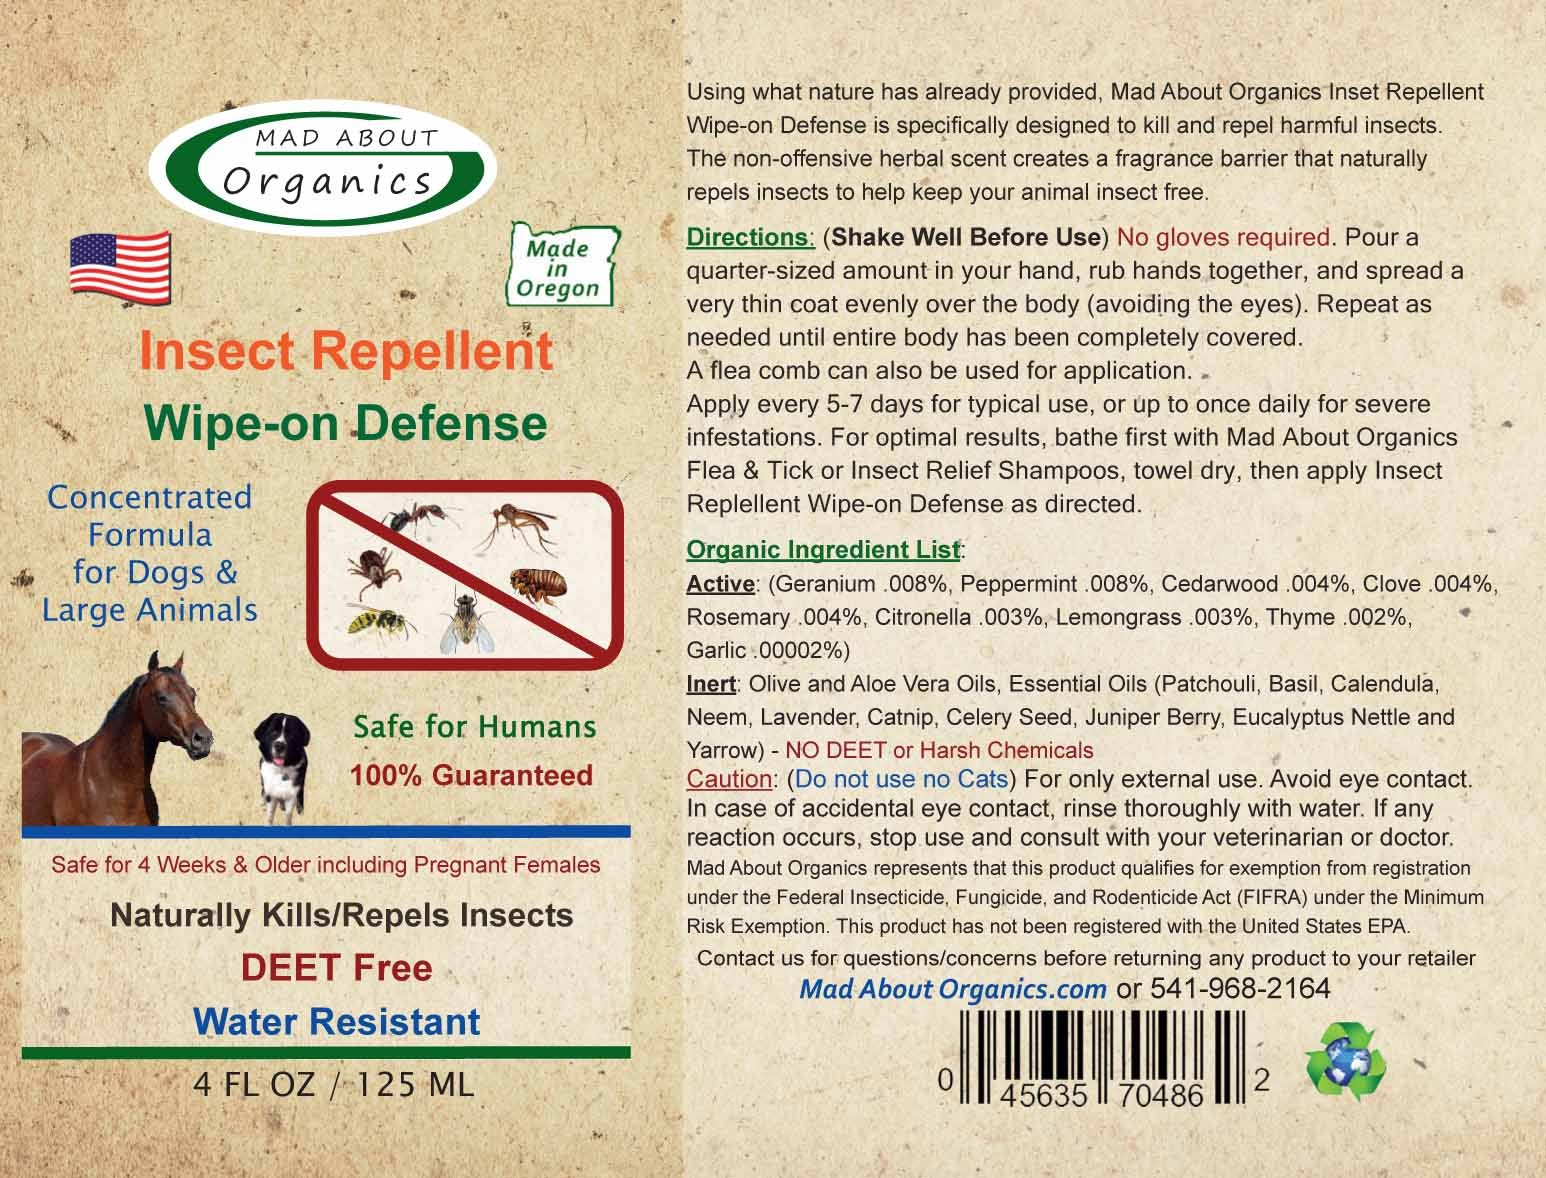 Mad About Organics All Natural Horse/Farm Animal Insect Repellent Wipe-on Defense 4oz by Mad About Organics (Image #2)